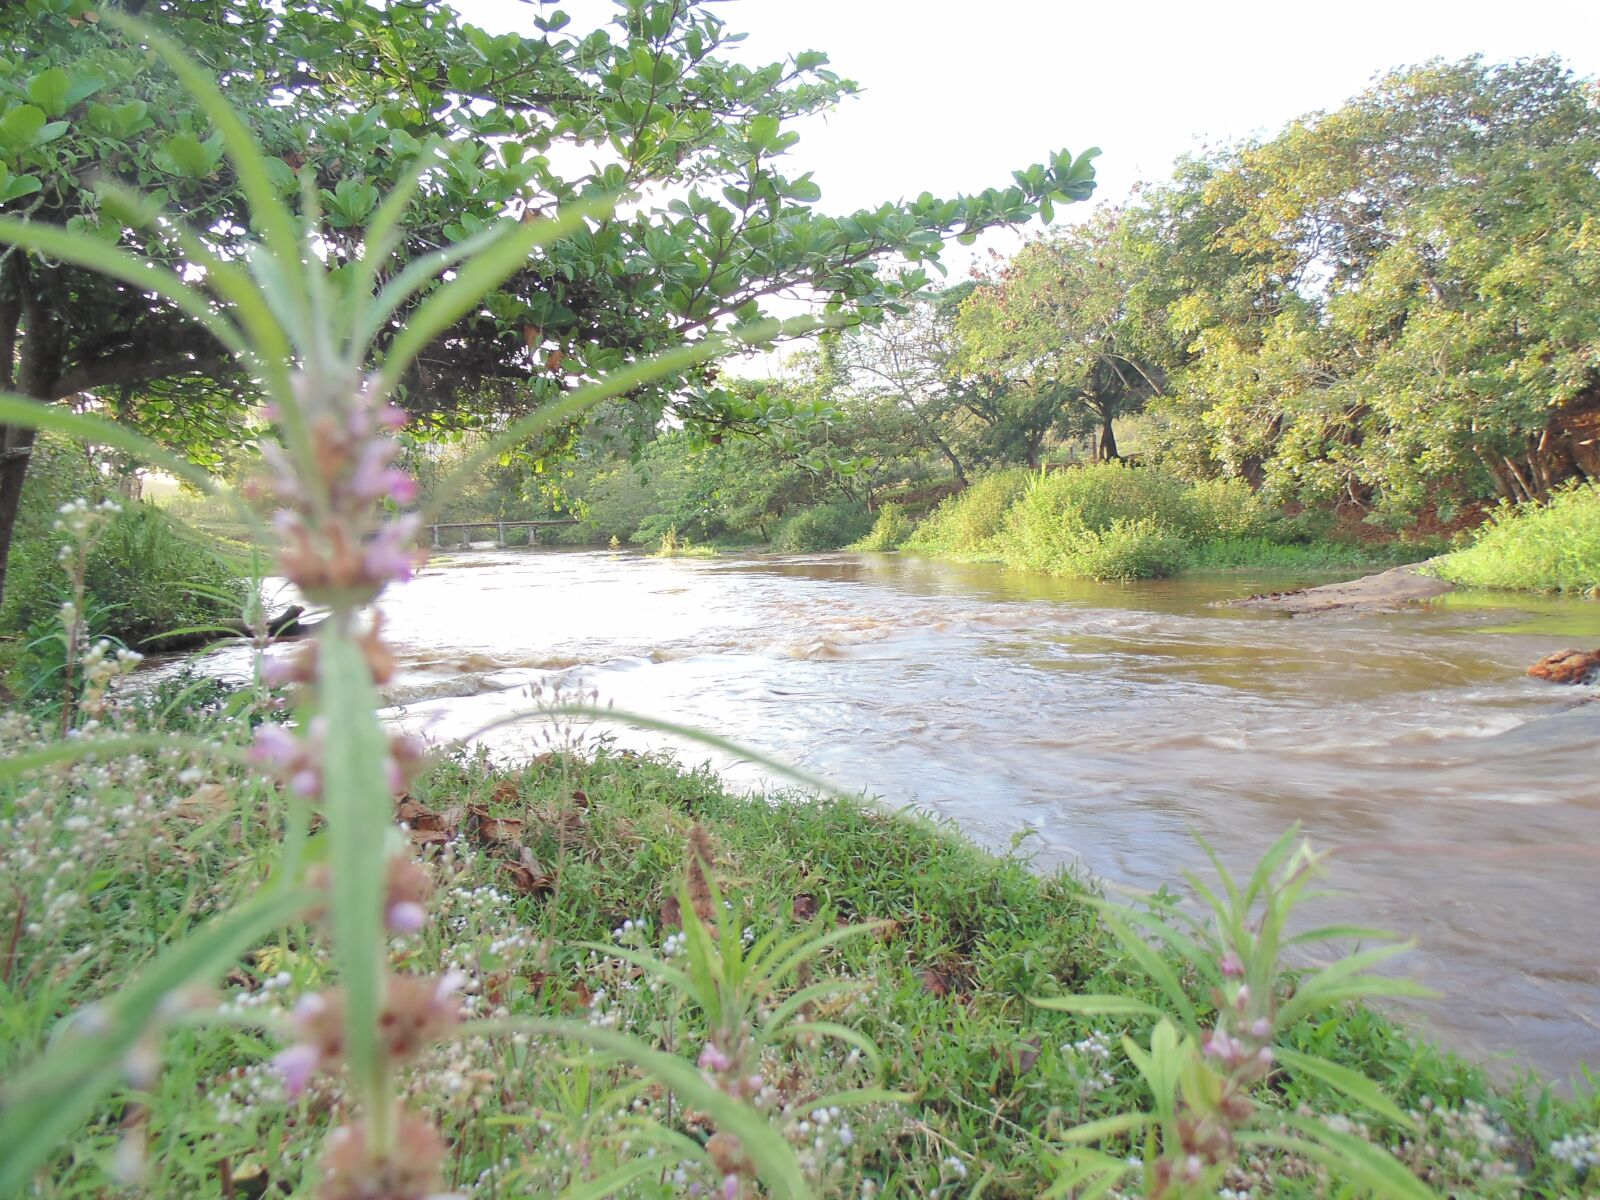 """Sony DSC-H100 sample photo. """"Nature, river, water"""" photography"""